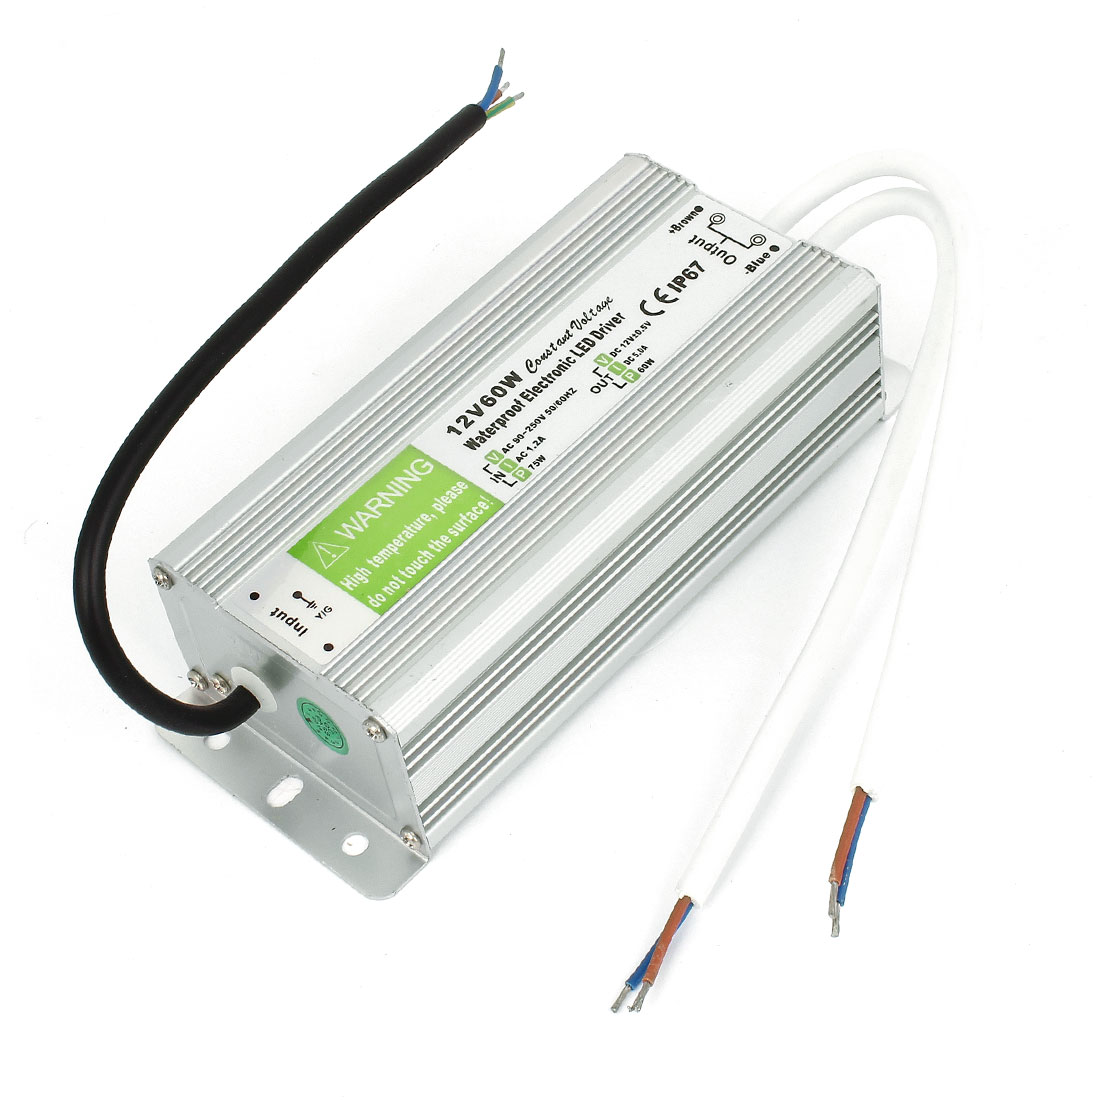 AC 90-250V Input DC12V 60W Output Waterproof LED Strip Power Driver